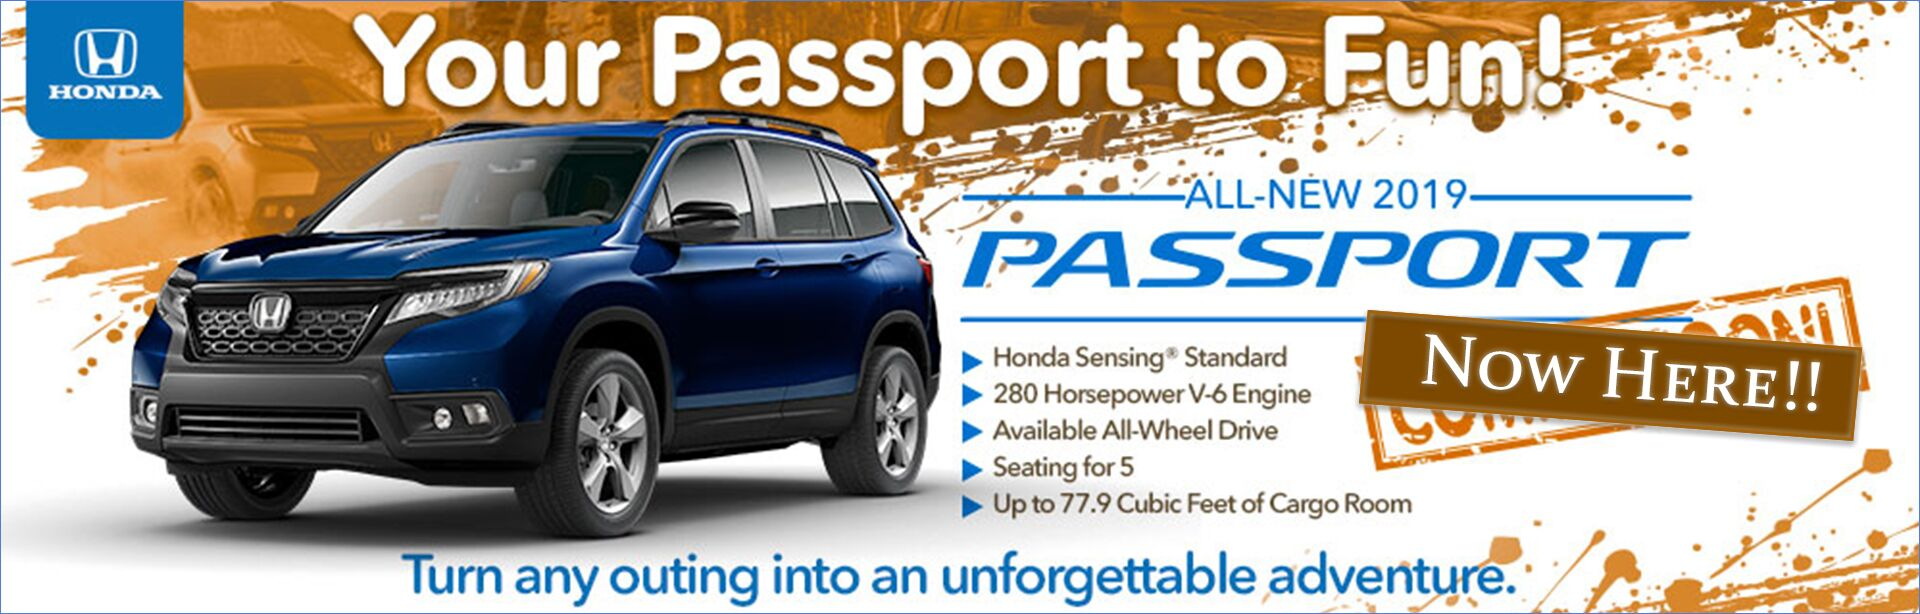 Honda Passport Now Here